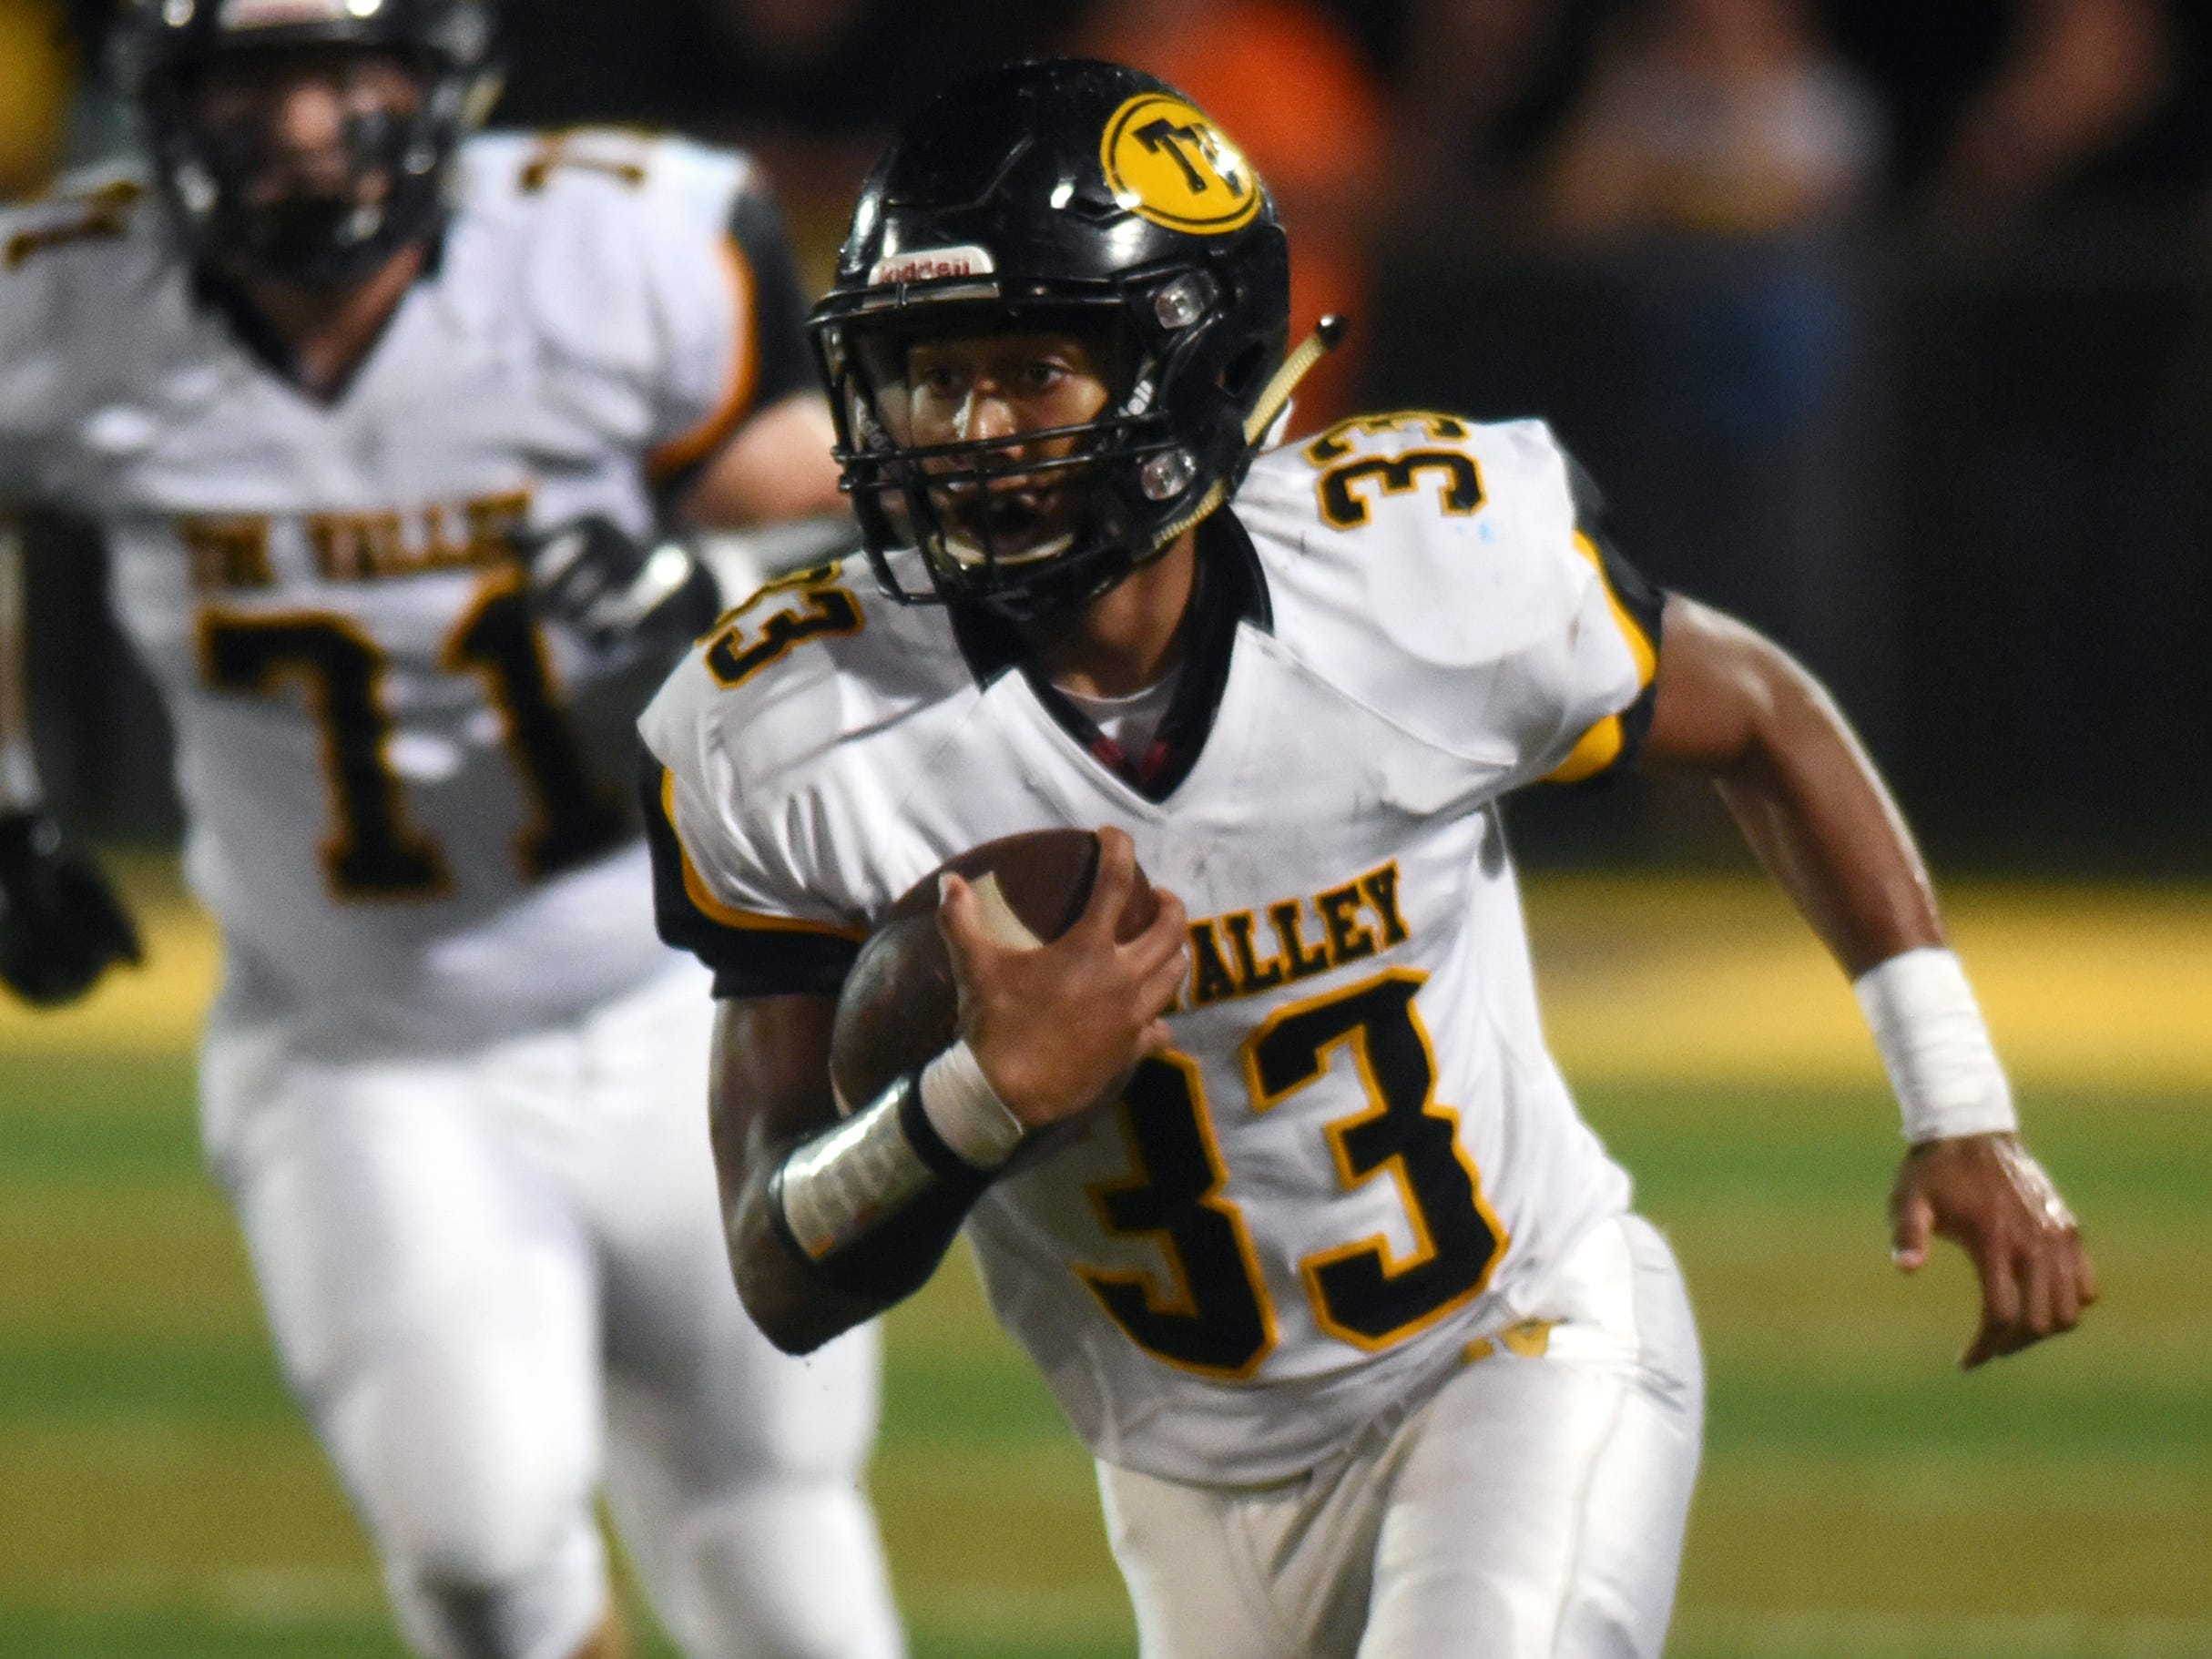 Jordan Pantaleo runs with the ball for Tri-Valley on Friday night against Philo at Sam Hatfield Stadium.